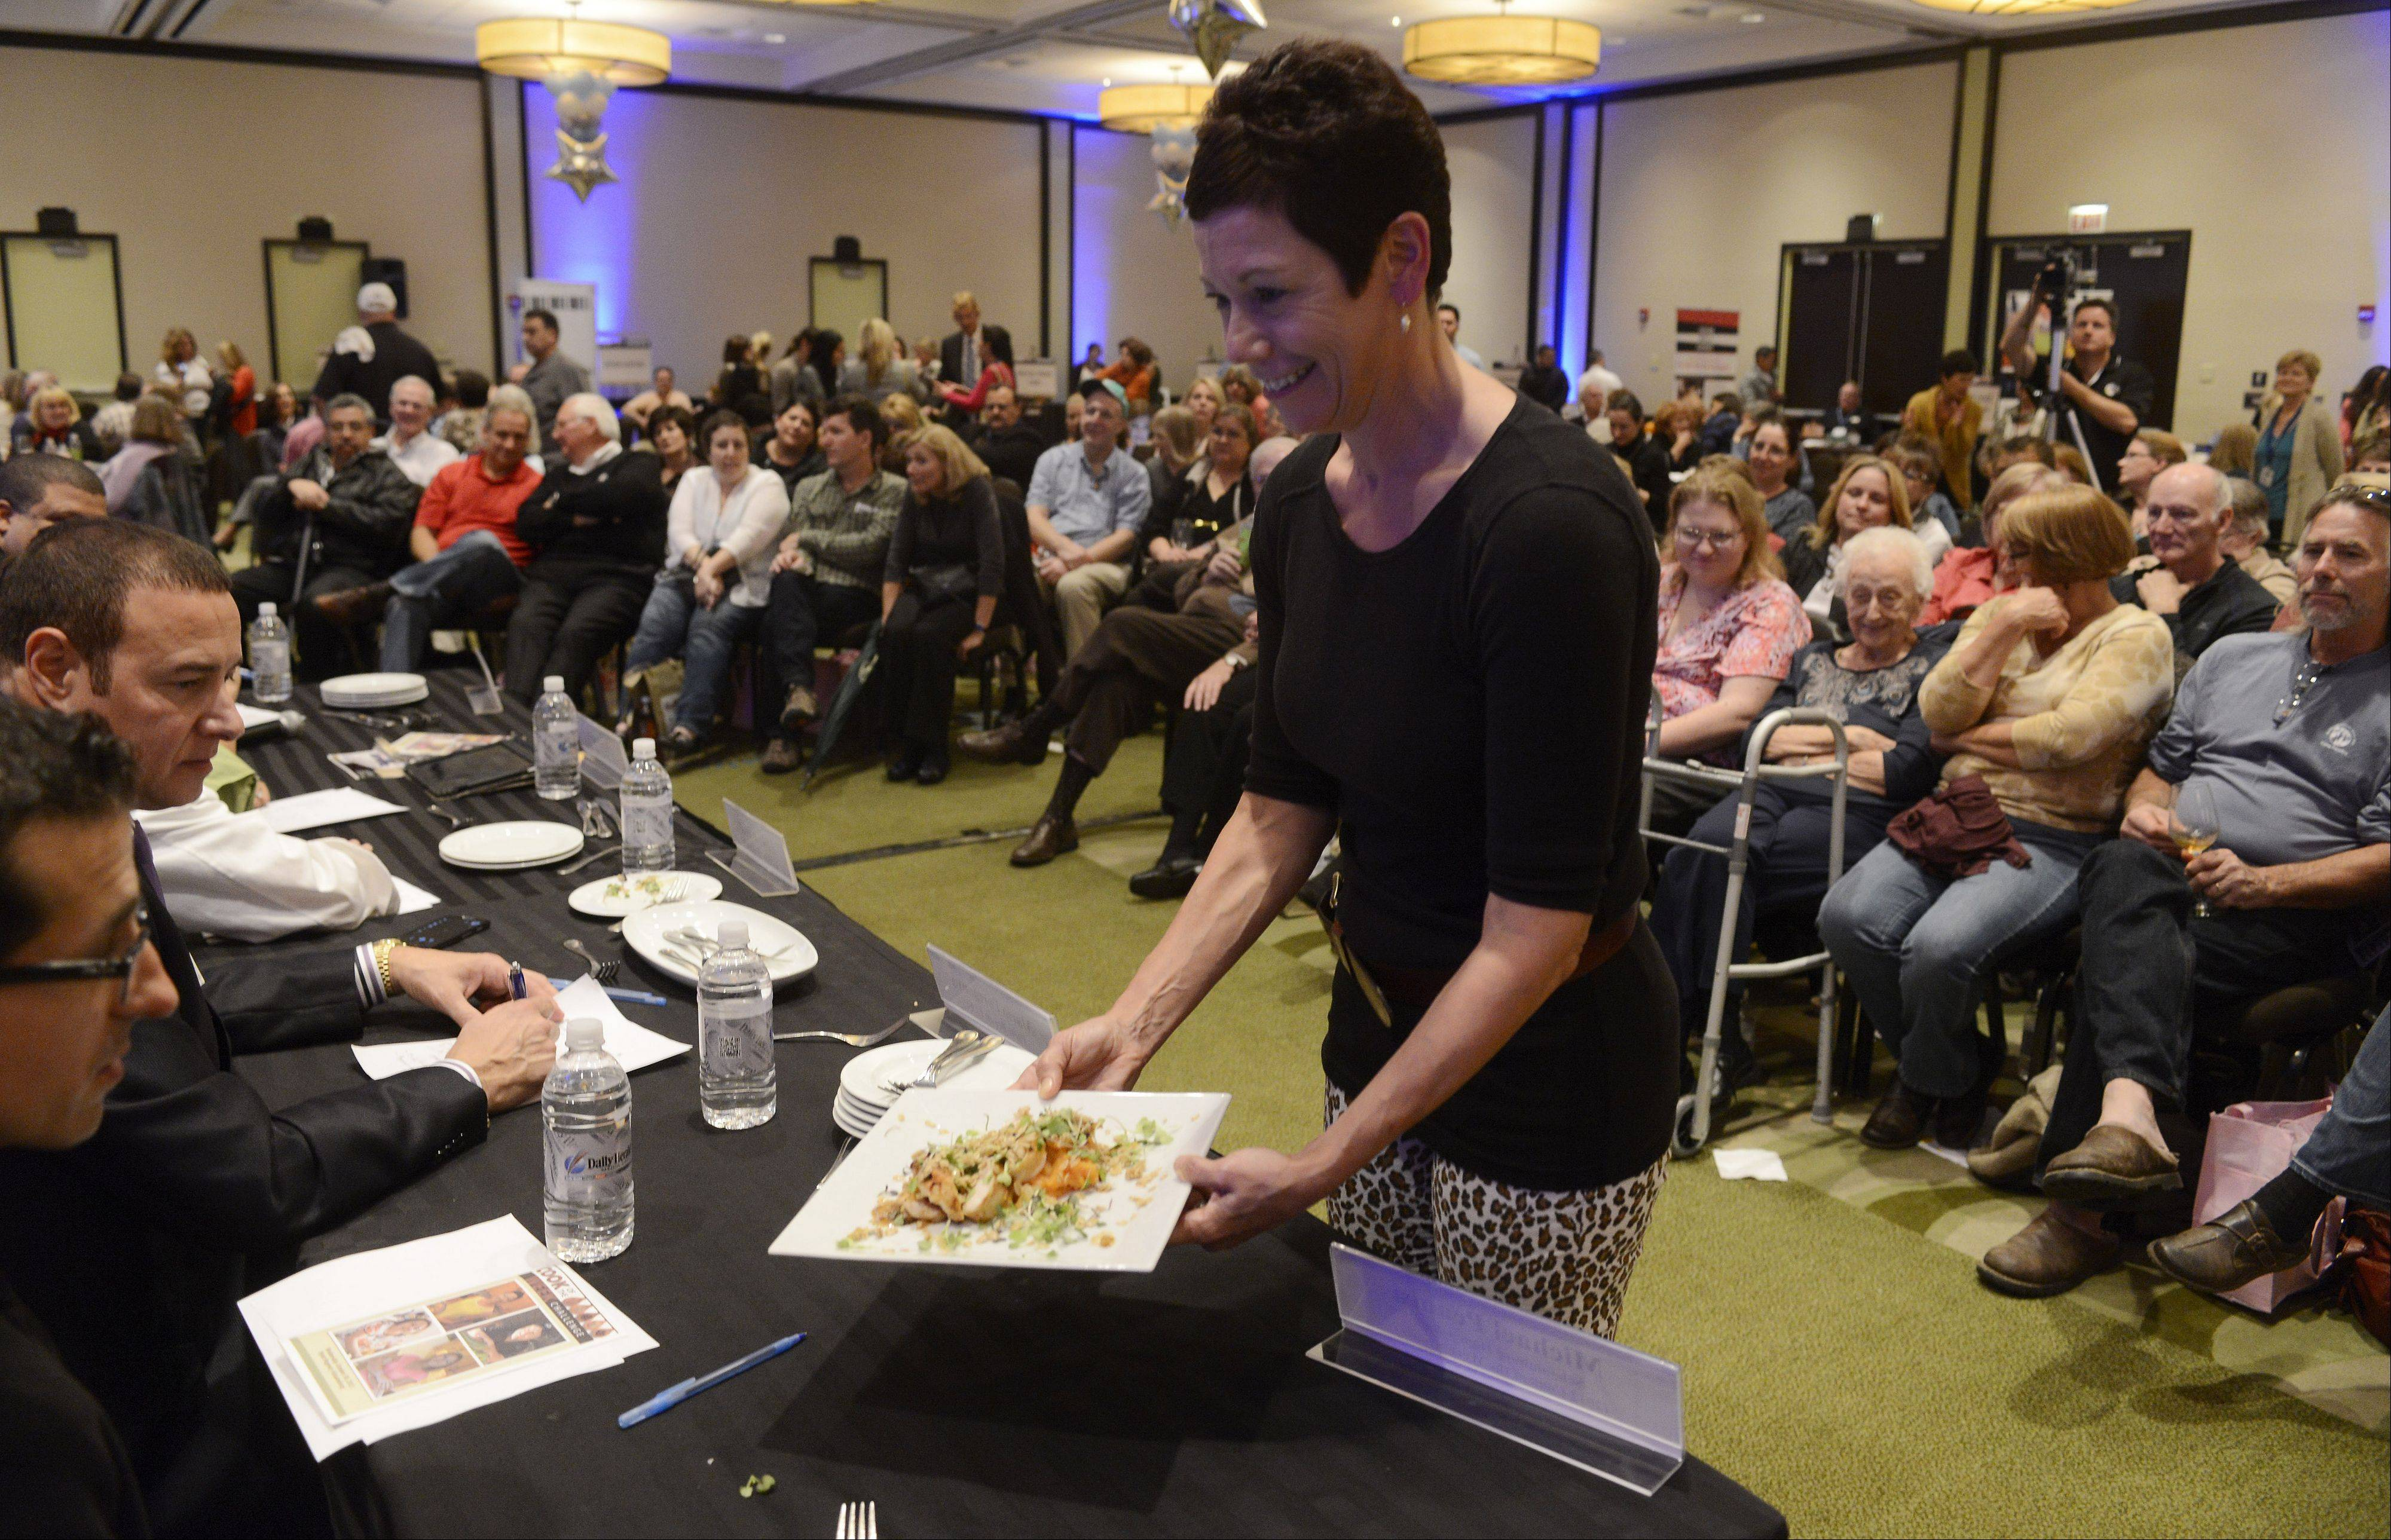 JOE LEWNARD/jlewnard@dailyherald.comLori Motyka of West Chicago presents her dish to the judges during the Daily Herald Cook of the Week Cookoff finals, held at the Hyatt Regency Schaumburg Wednesday.